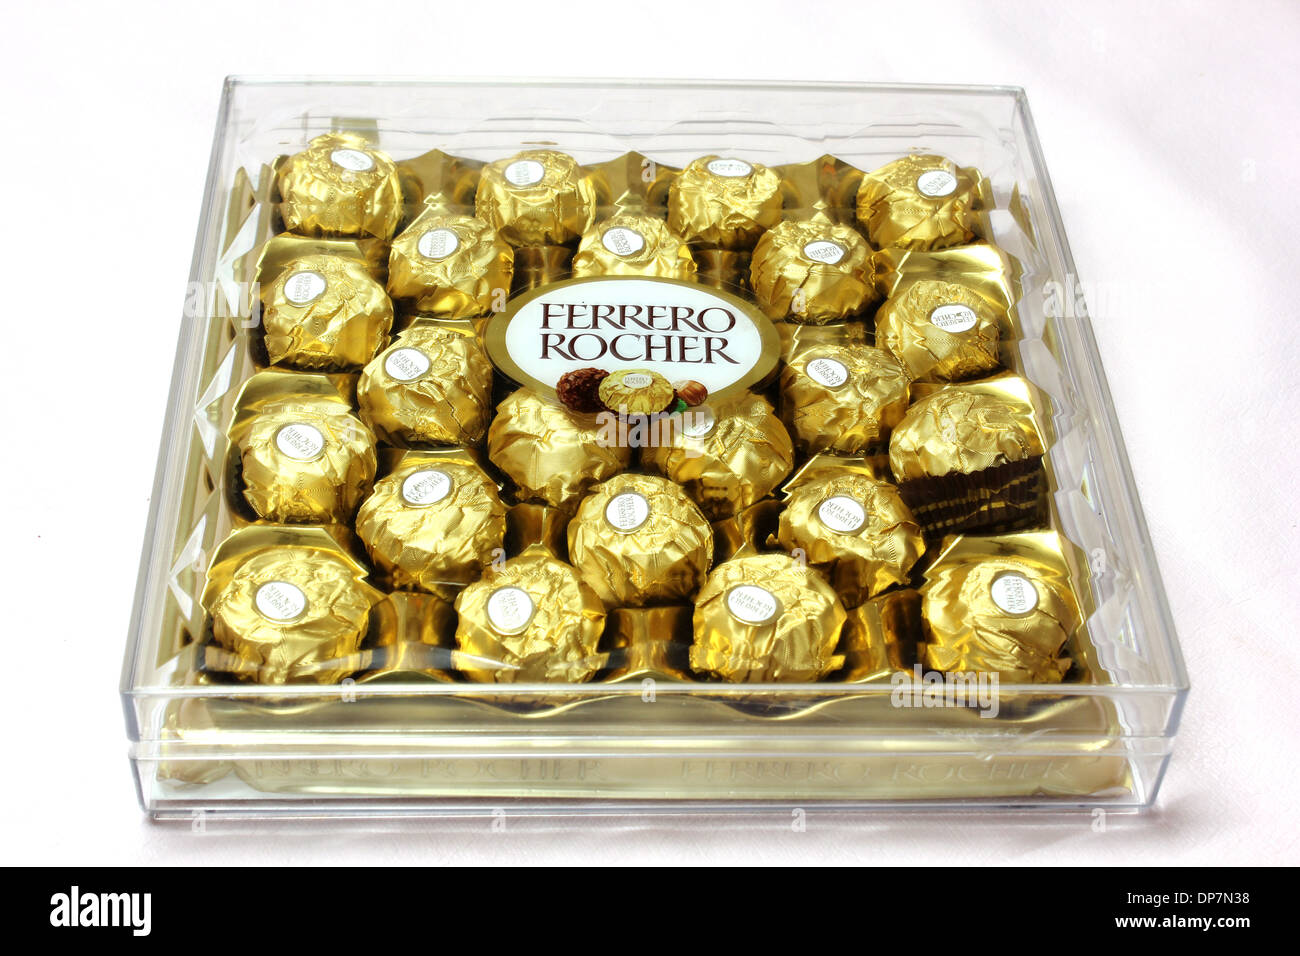 Rocher Chocolate Stock Photos & Rocher Chocolate Stock Images - Alamy